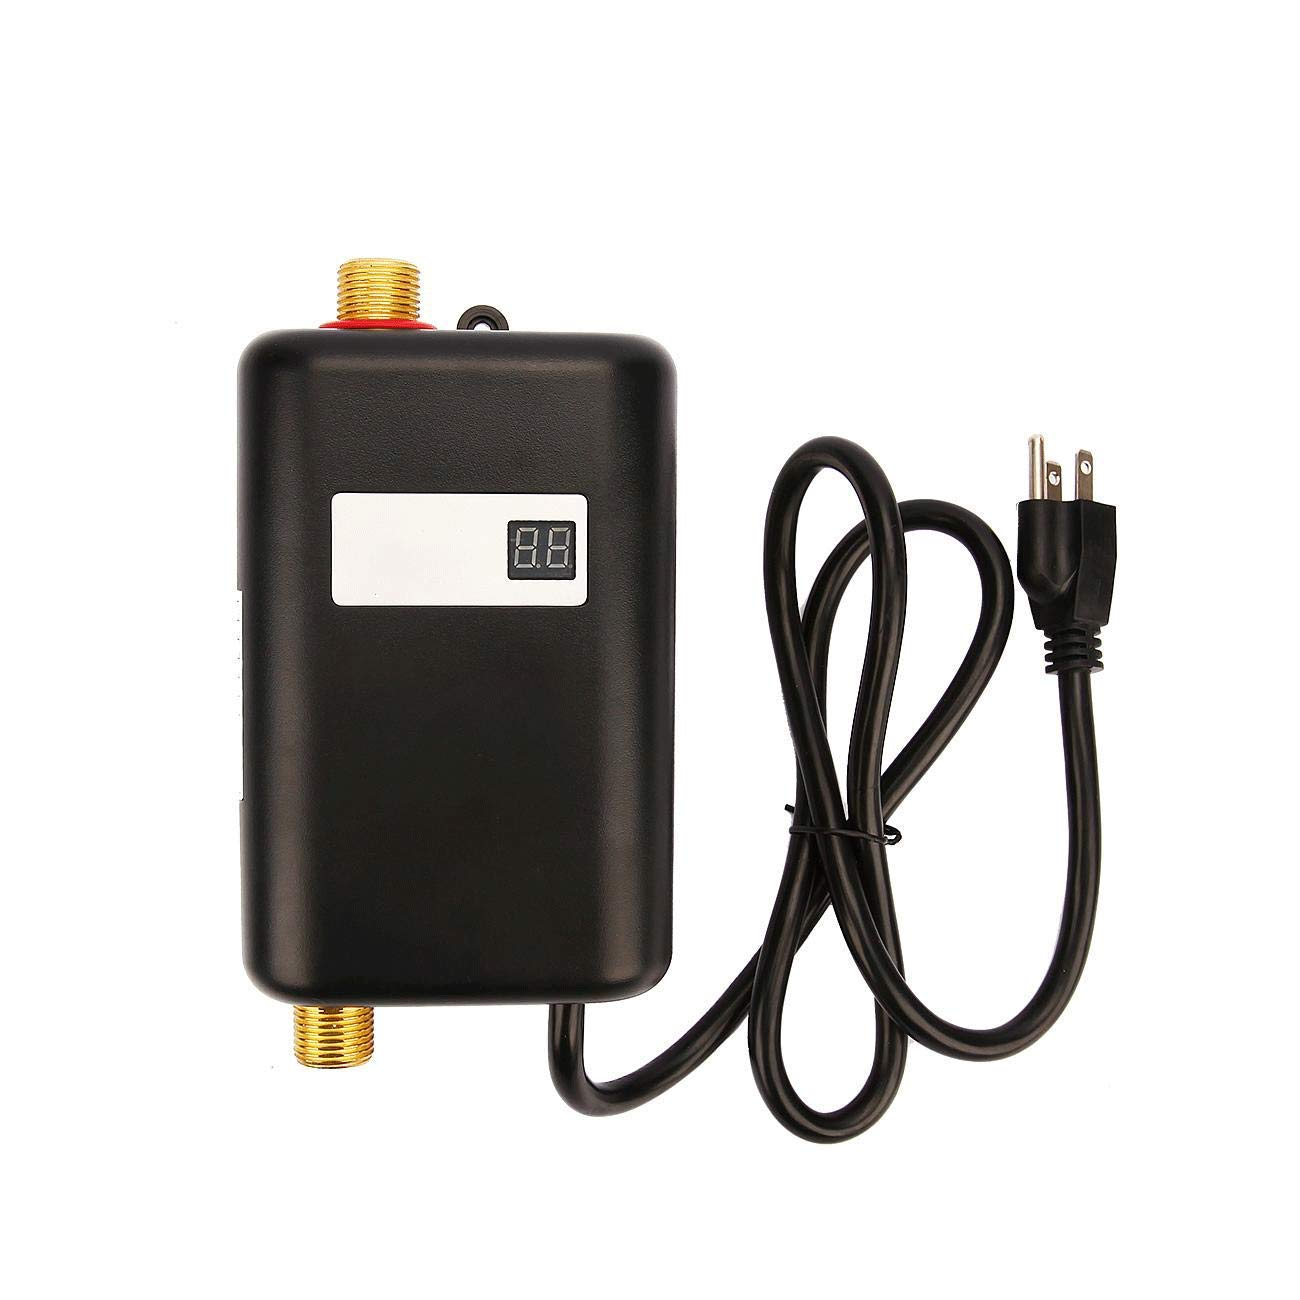 IRONWALLS 3KW 110V Mini Instant Water Heater Electric Tankless Hot Water Heater Under Sink Black for Kitchen Washing Basin Bathroom